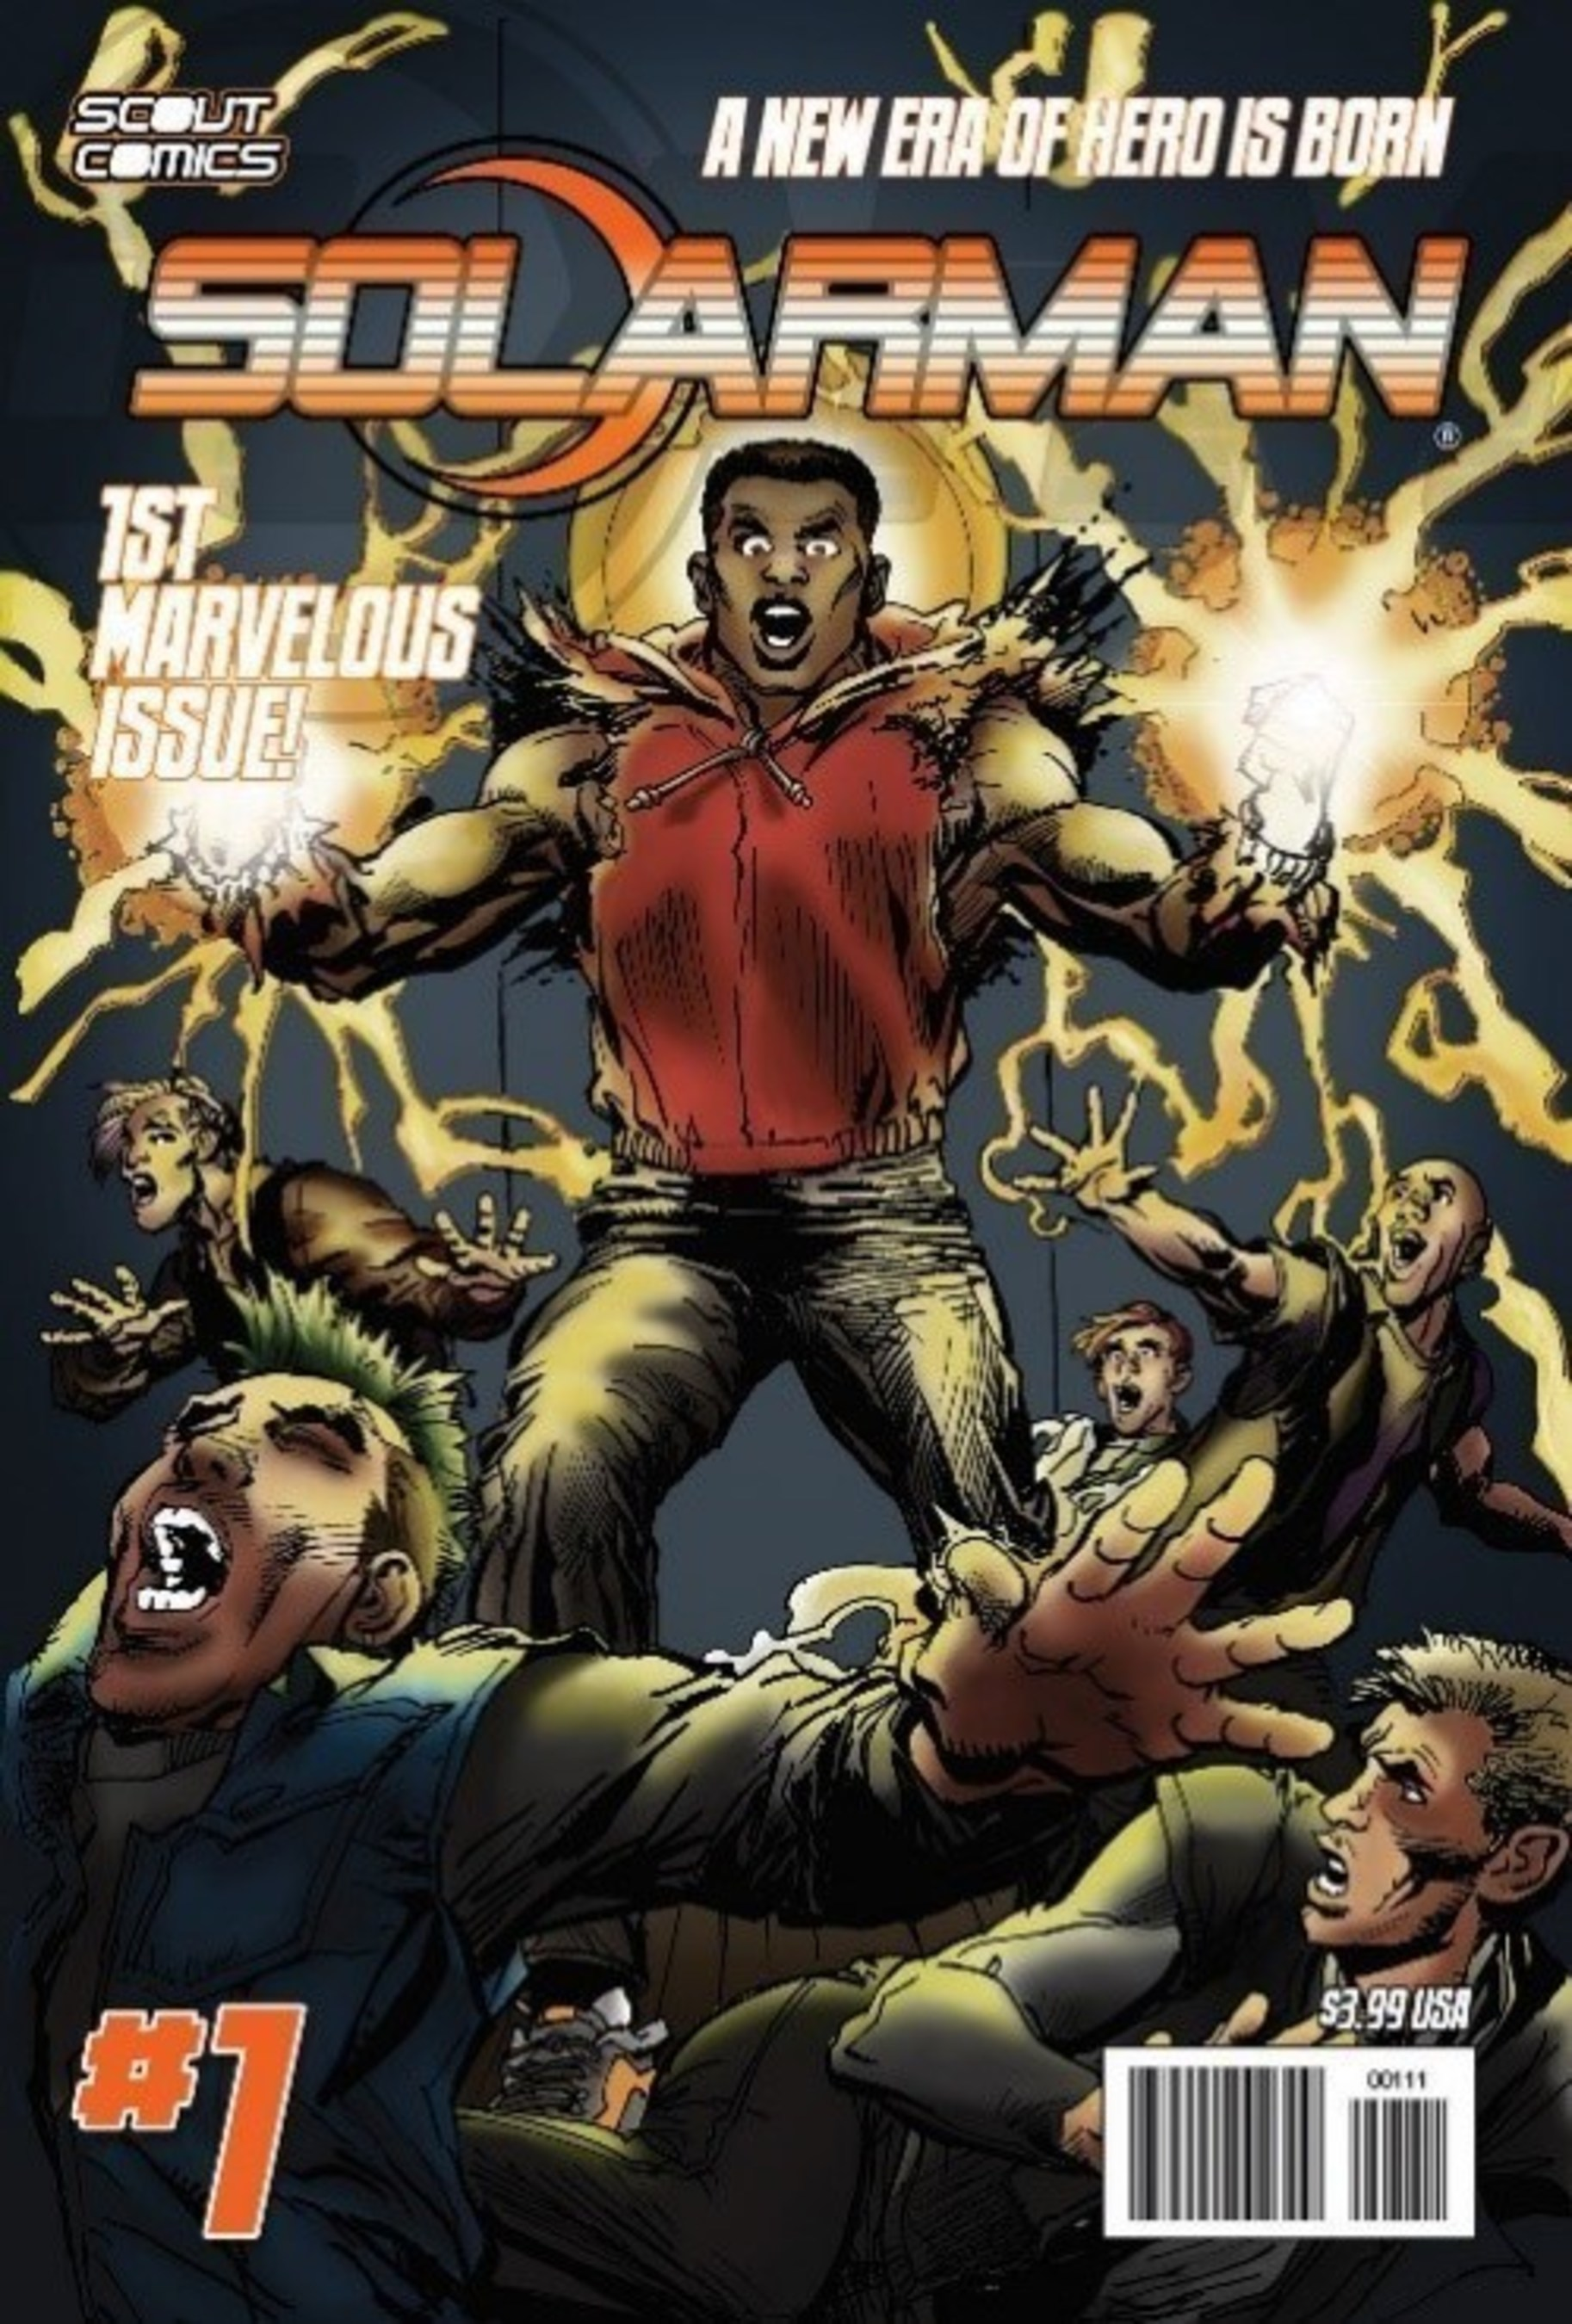 2015 SOLARMAN NEAL ADAMS COVER TO LAUNCH SUMMER 2015